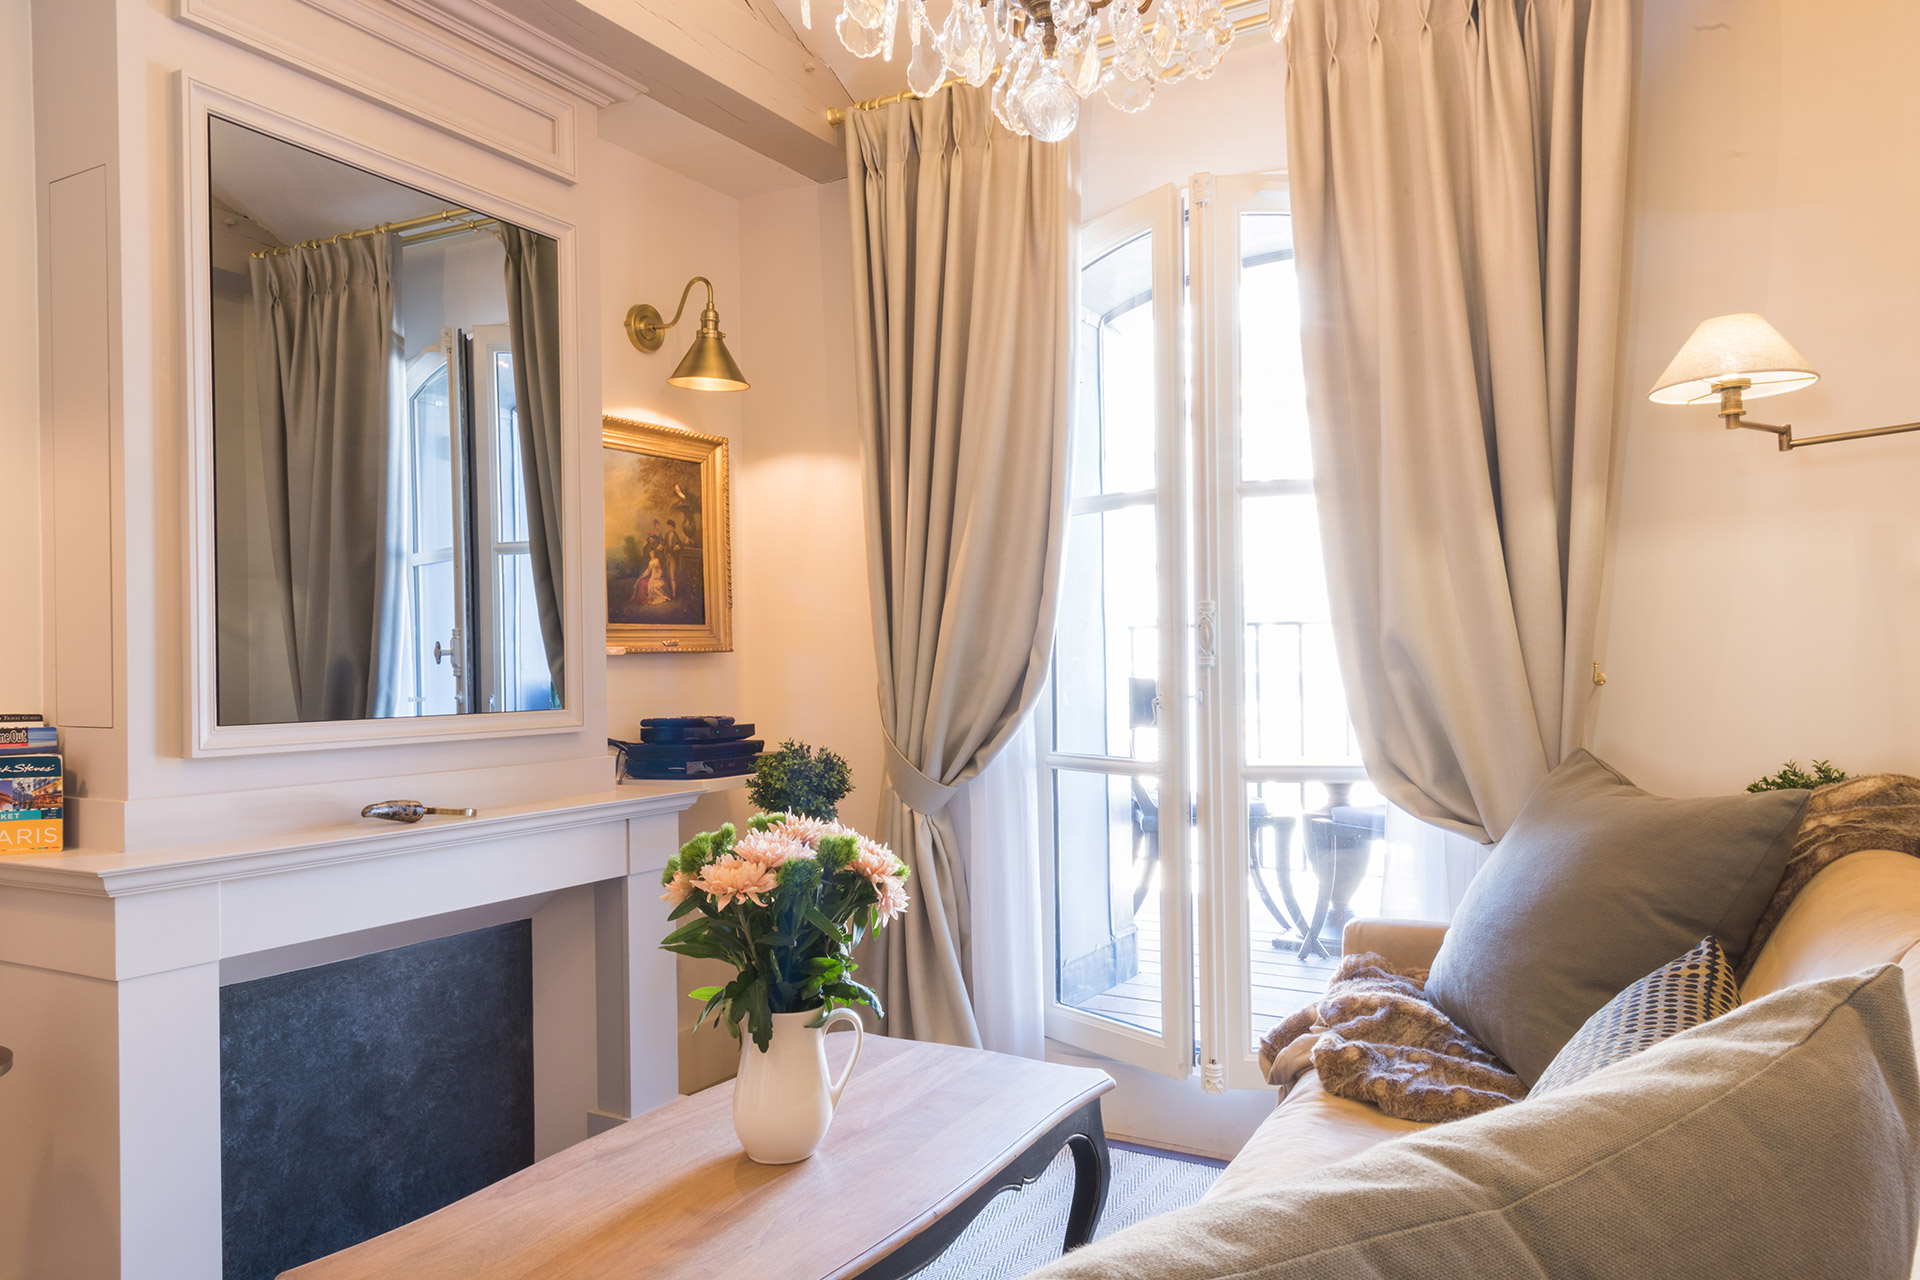 Relax in style in this elegant seating area of the Monbazillac vacation rental offered by Paris Perfect